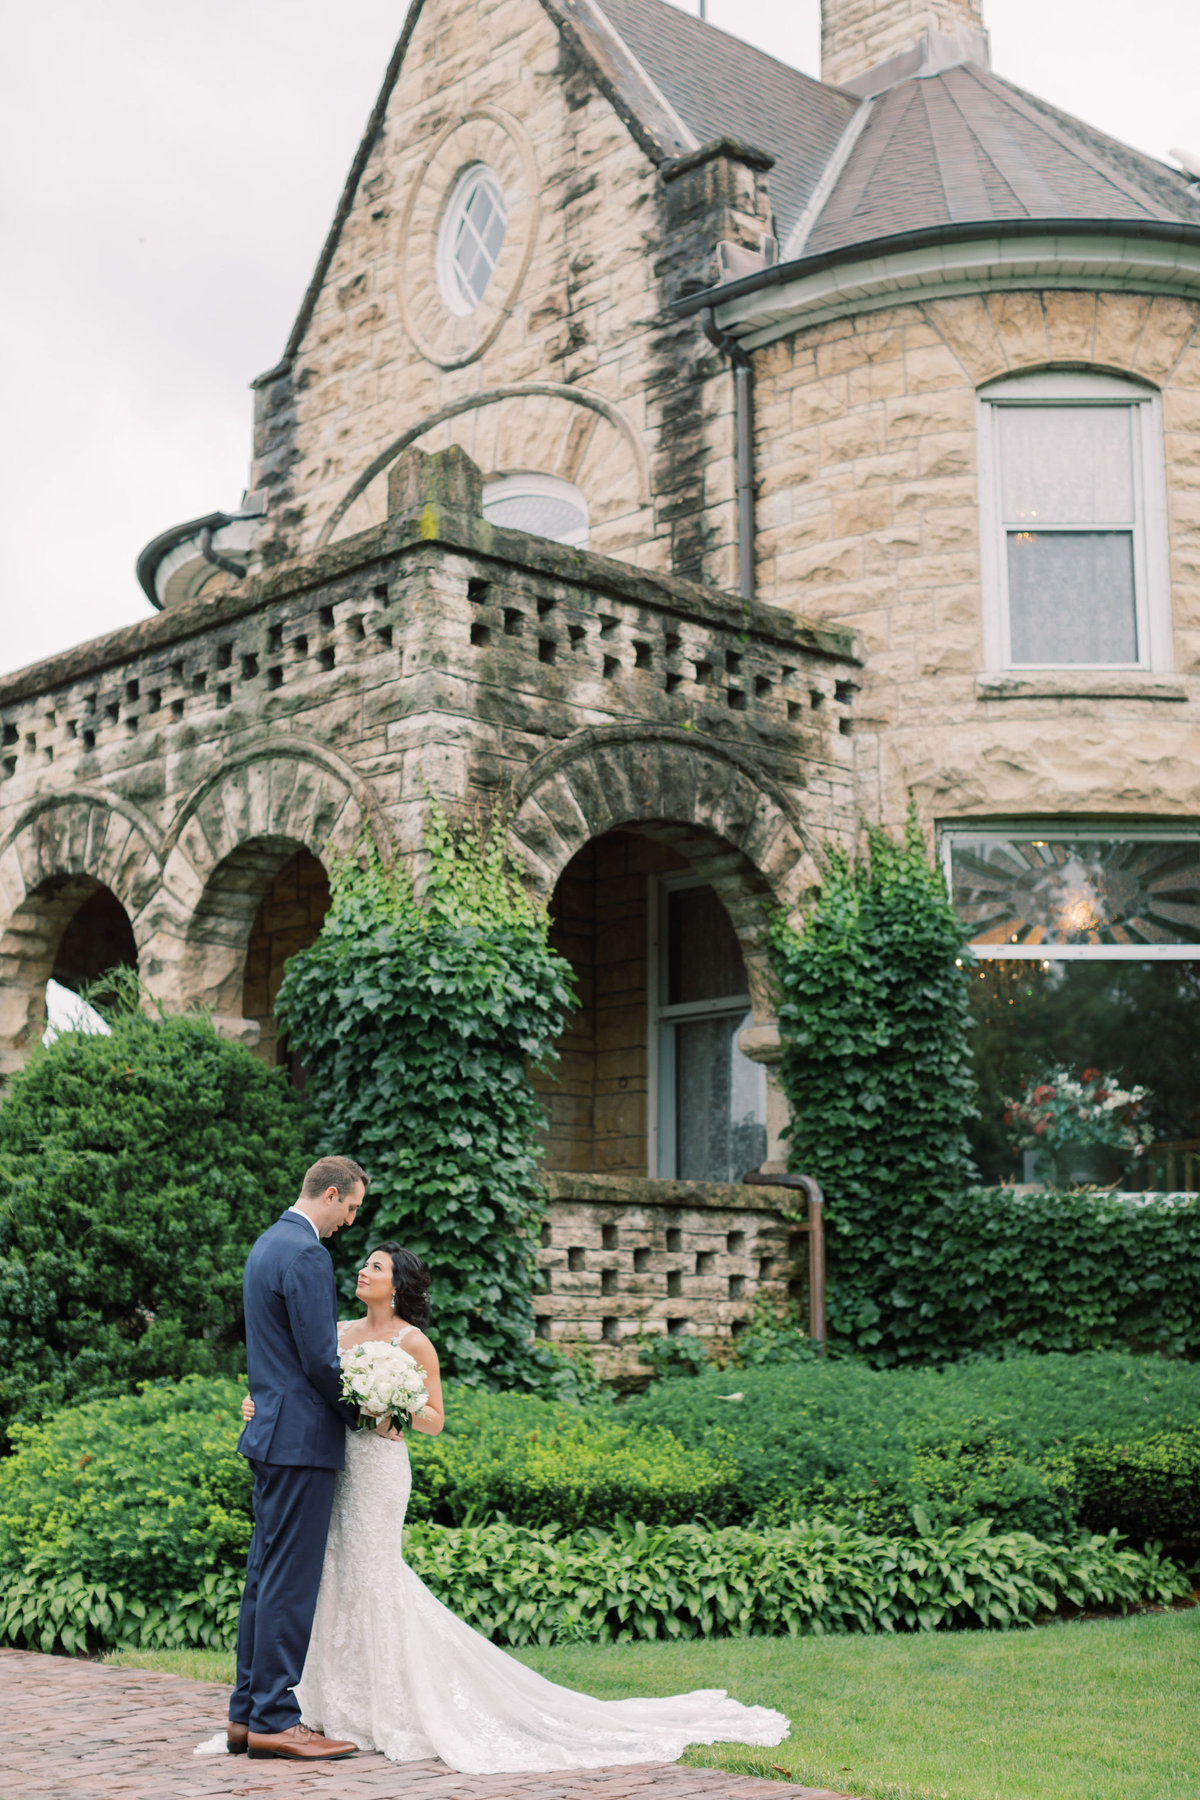 TiffaneyChildsPhotography-ChicagoWeddingPhotographer-Kirsten+Jeff-PatrickHaleyMansionWedding-80